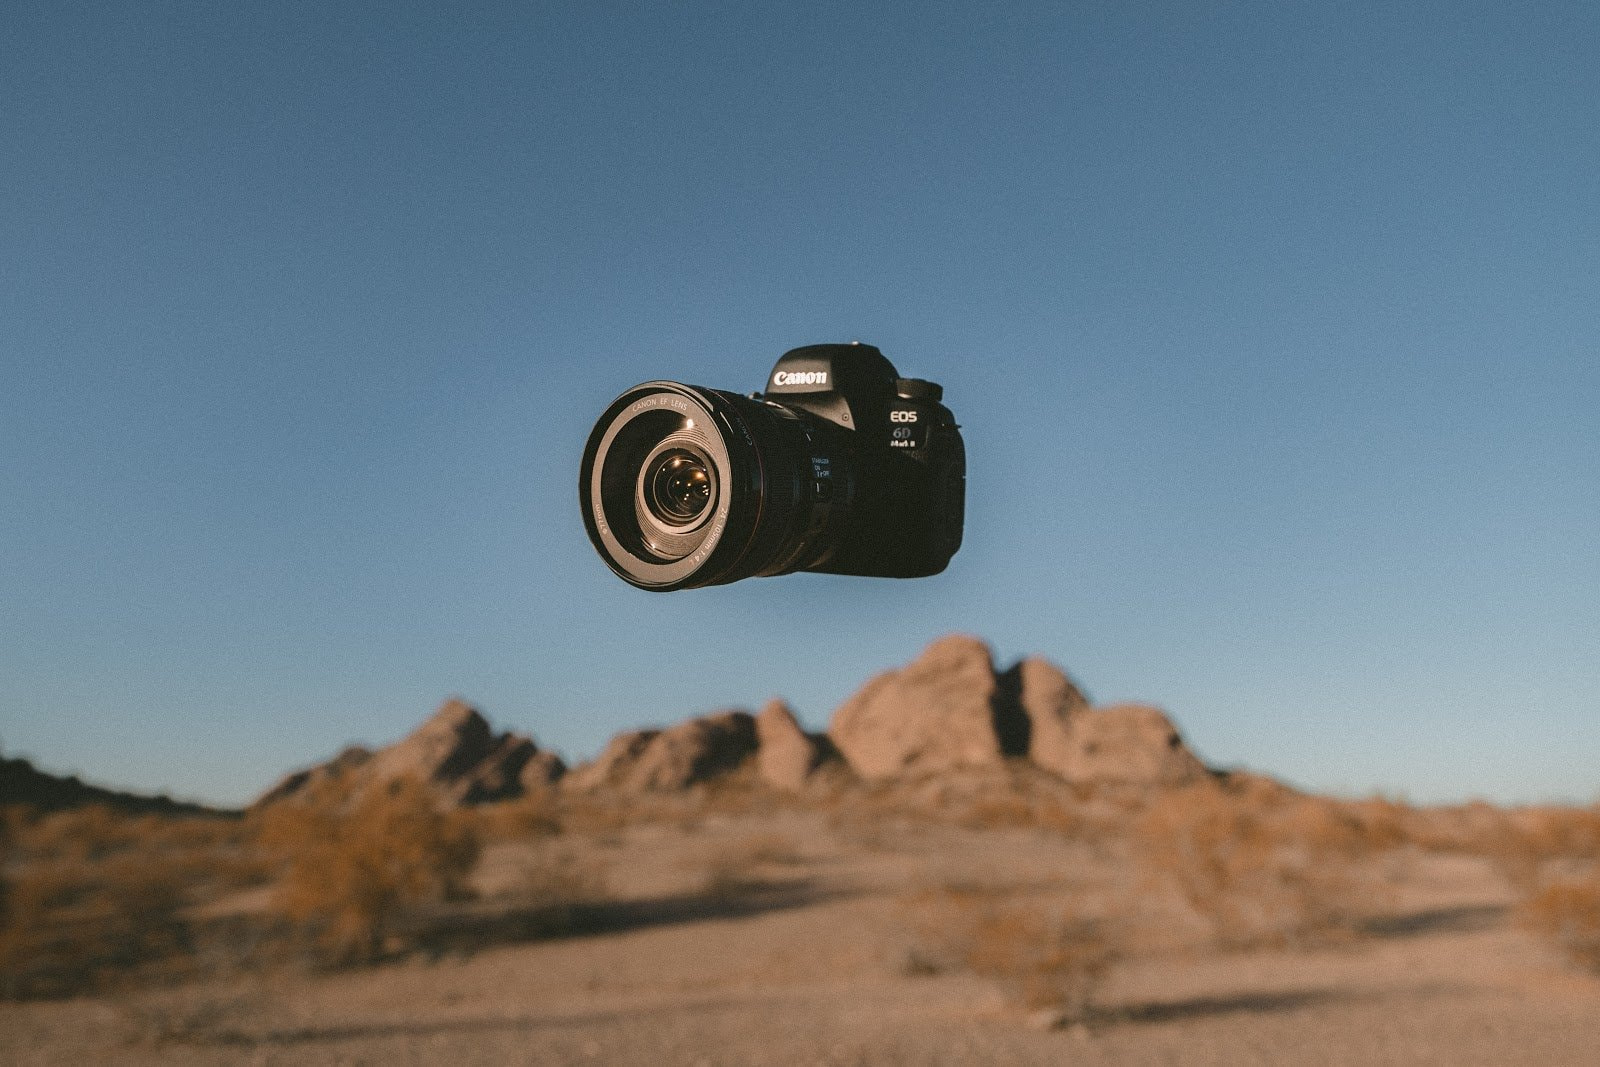 Canon camera floating against a desert backdrop by Jakob Owens